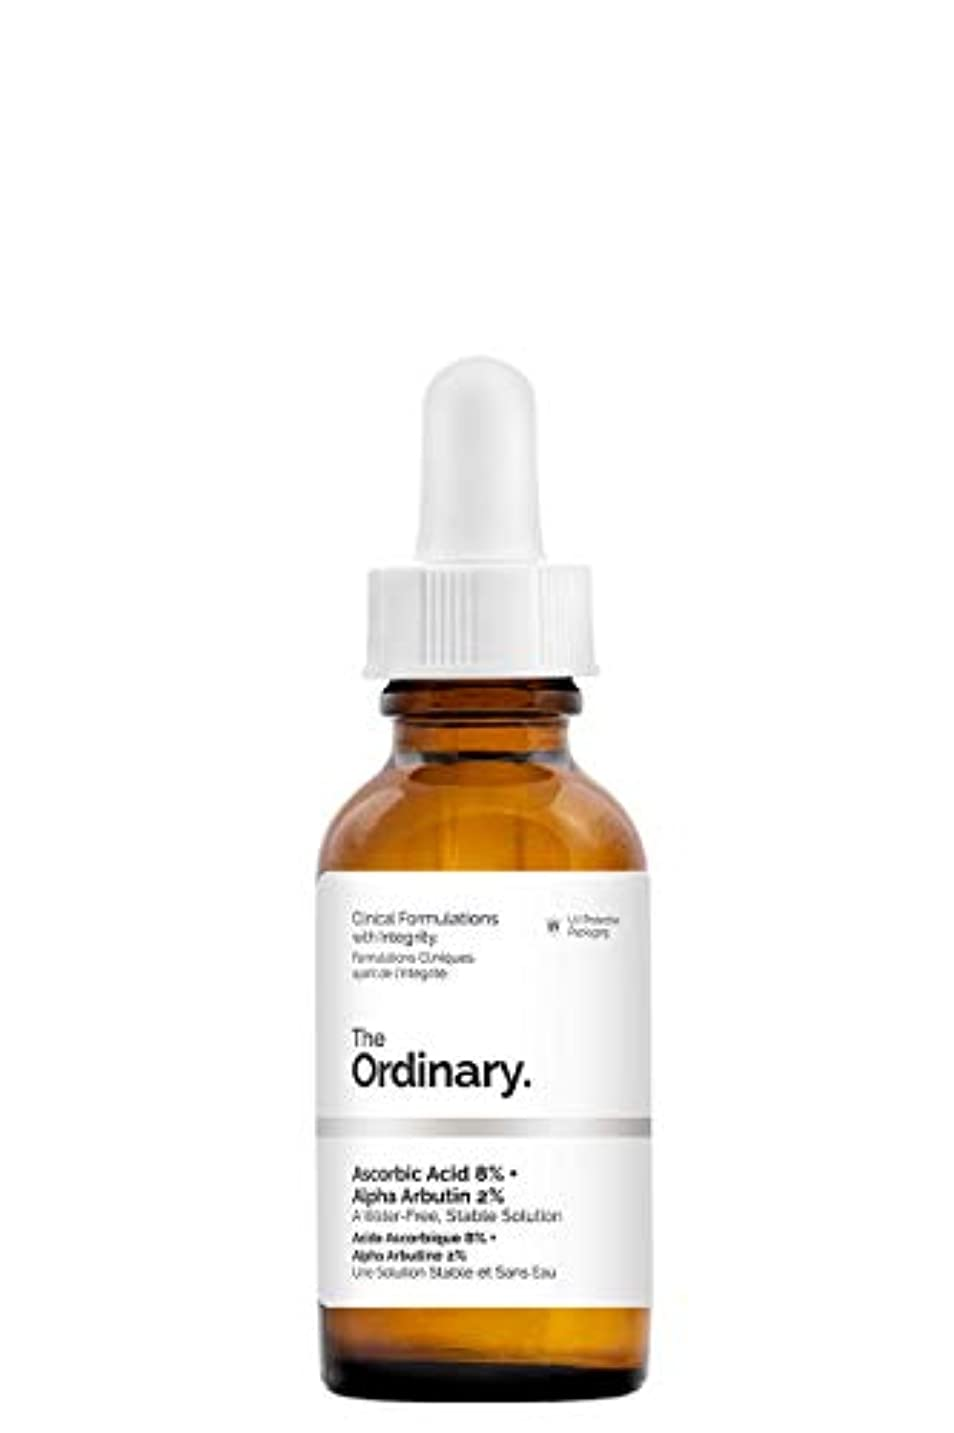 毒性本物マカダムThe Ordinary Ascorbic Acid 8% + Alpha Arbutin 2%